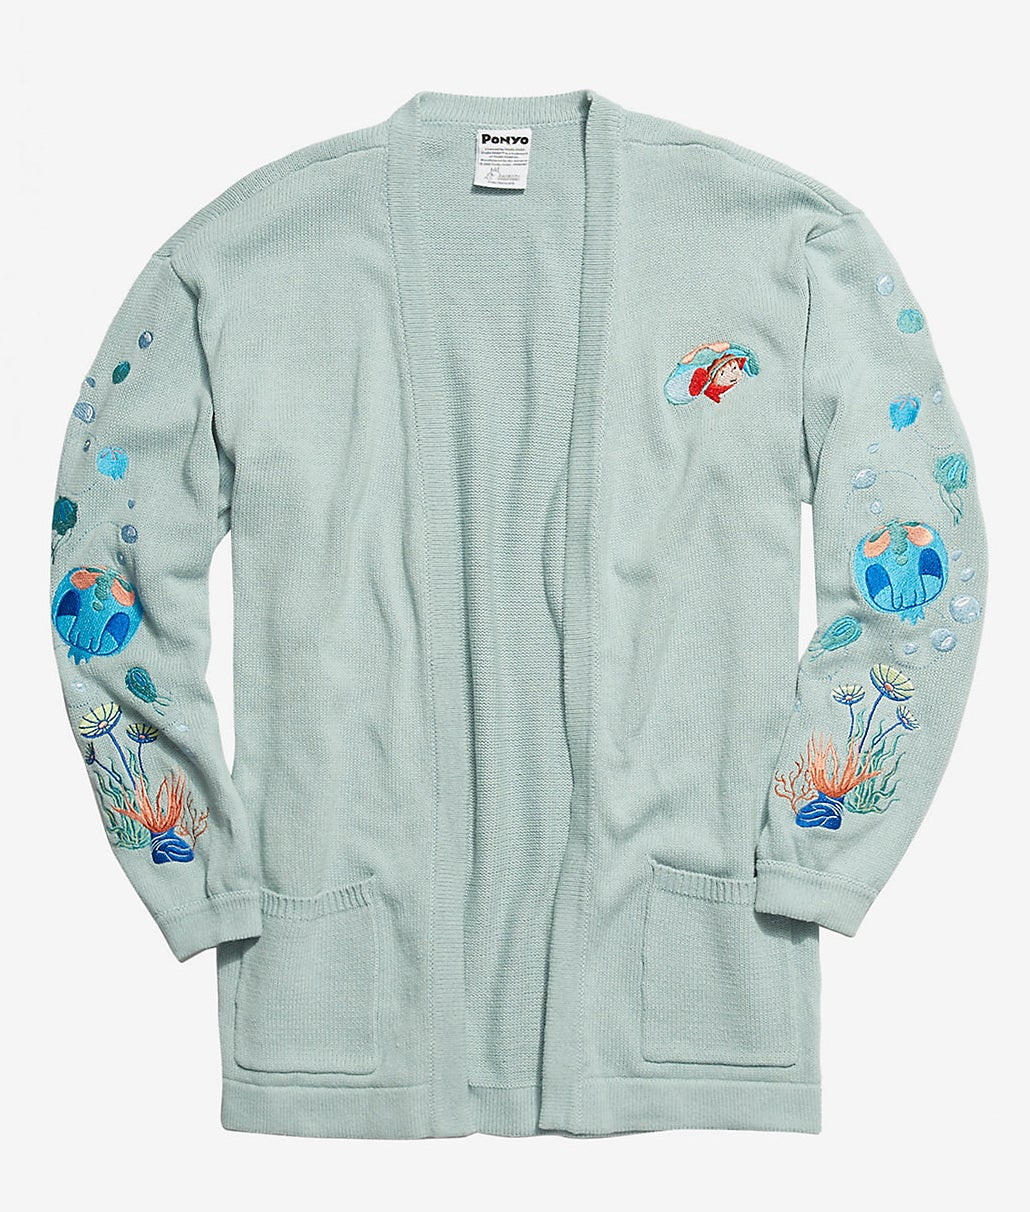 the mint open cardigan with pockets and a ponyo embroidery on the chest, plus fish, bubbles, and plant embroidery on the sleeves